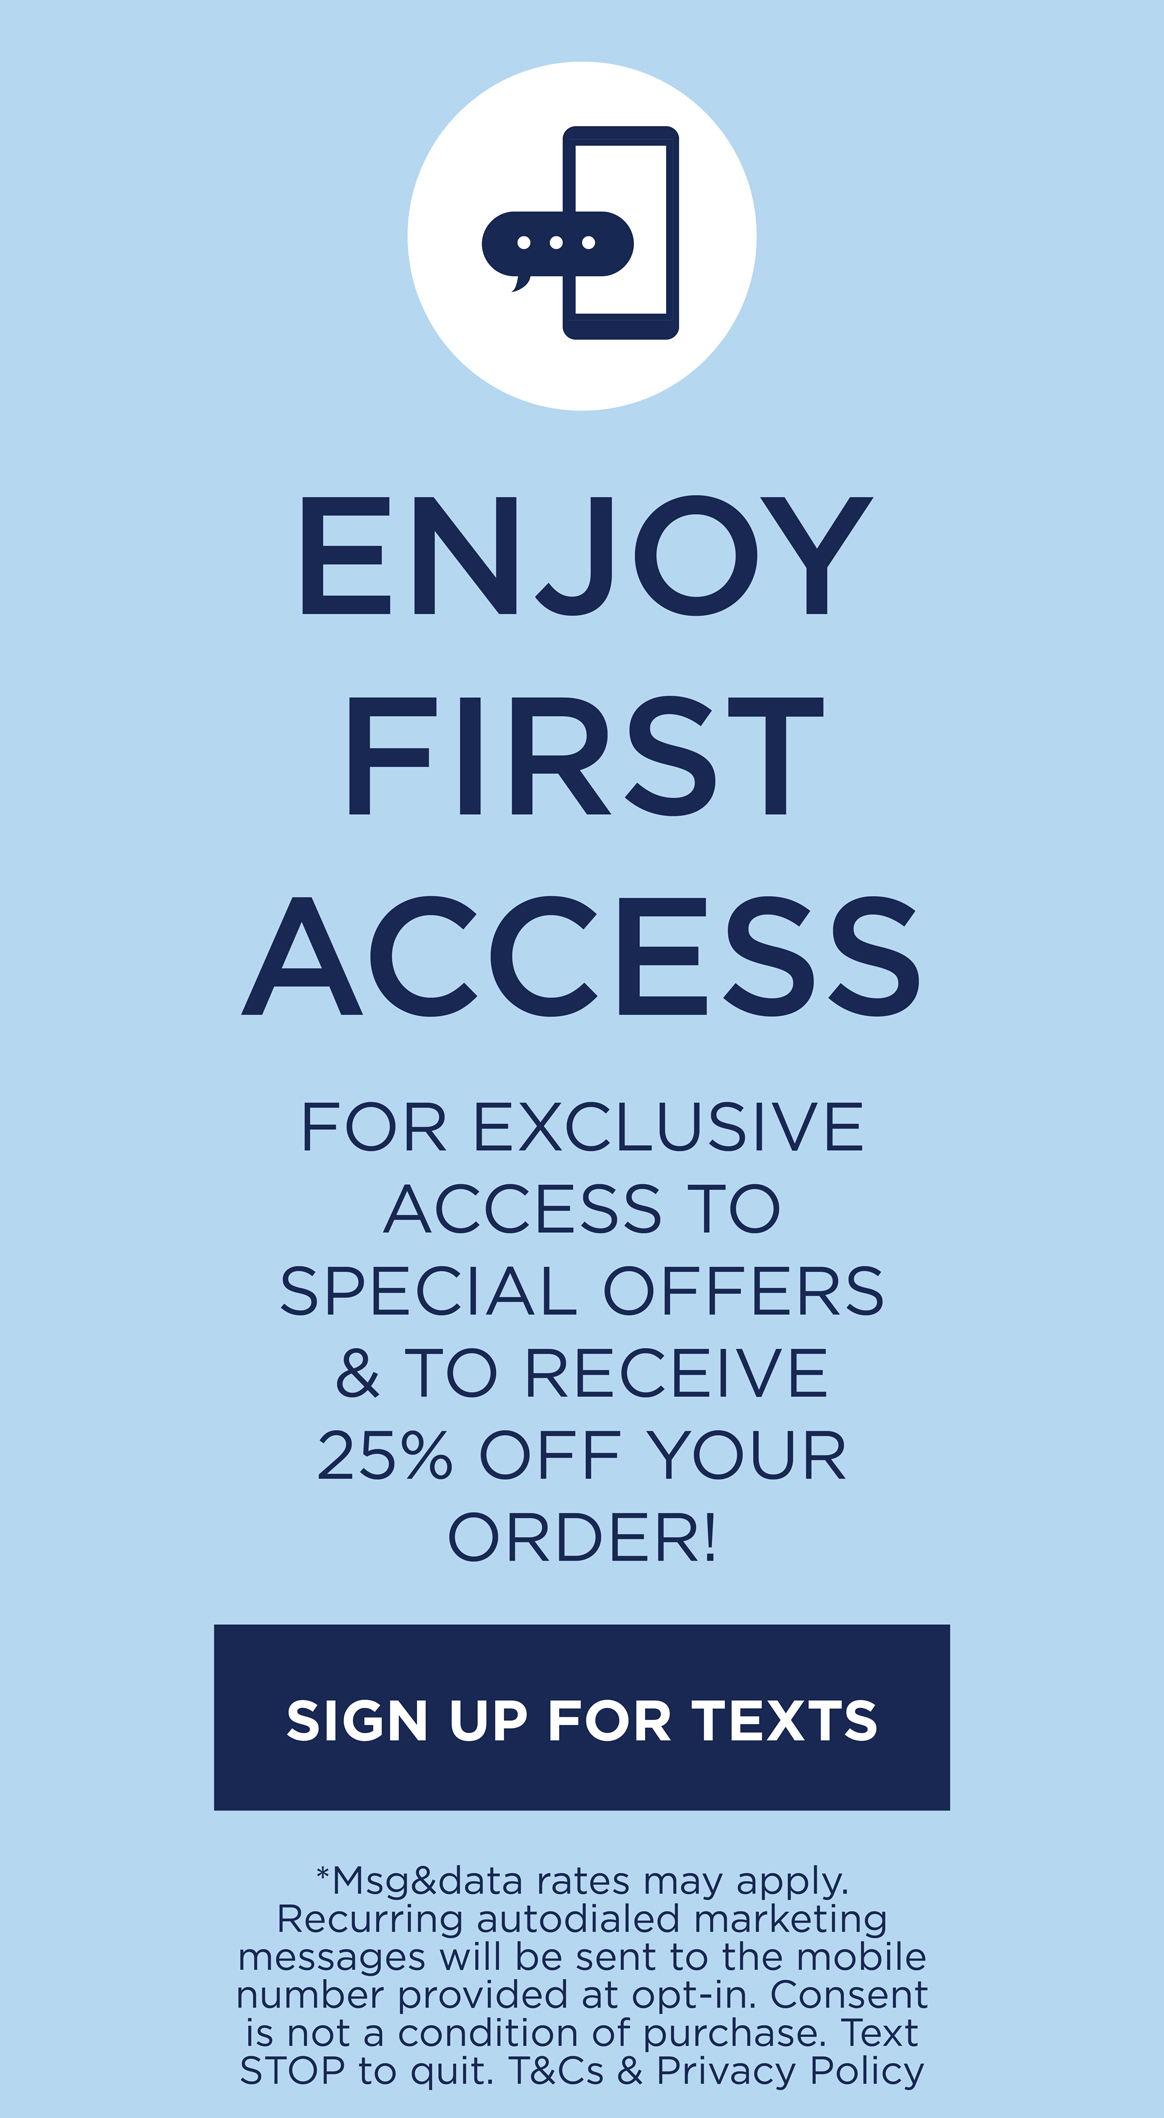 Enjoy First Access to special offers & to receive 25% off your order! Sign up for texts.